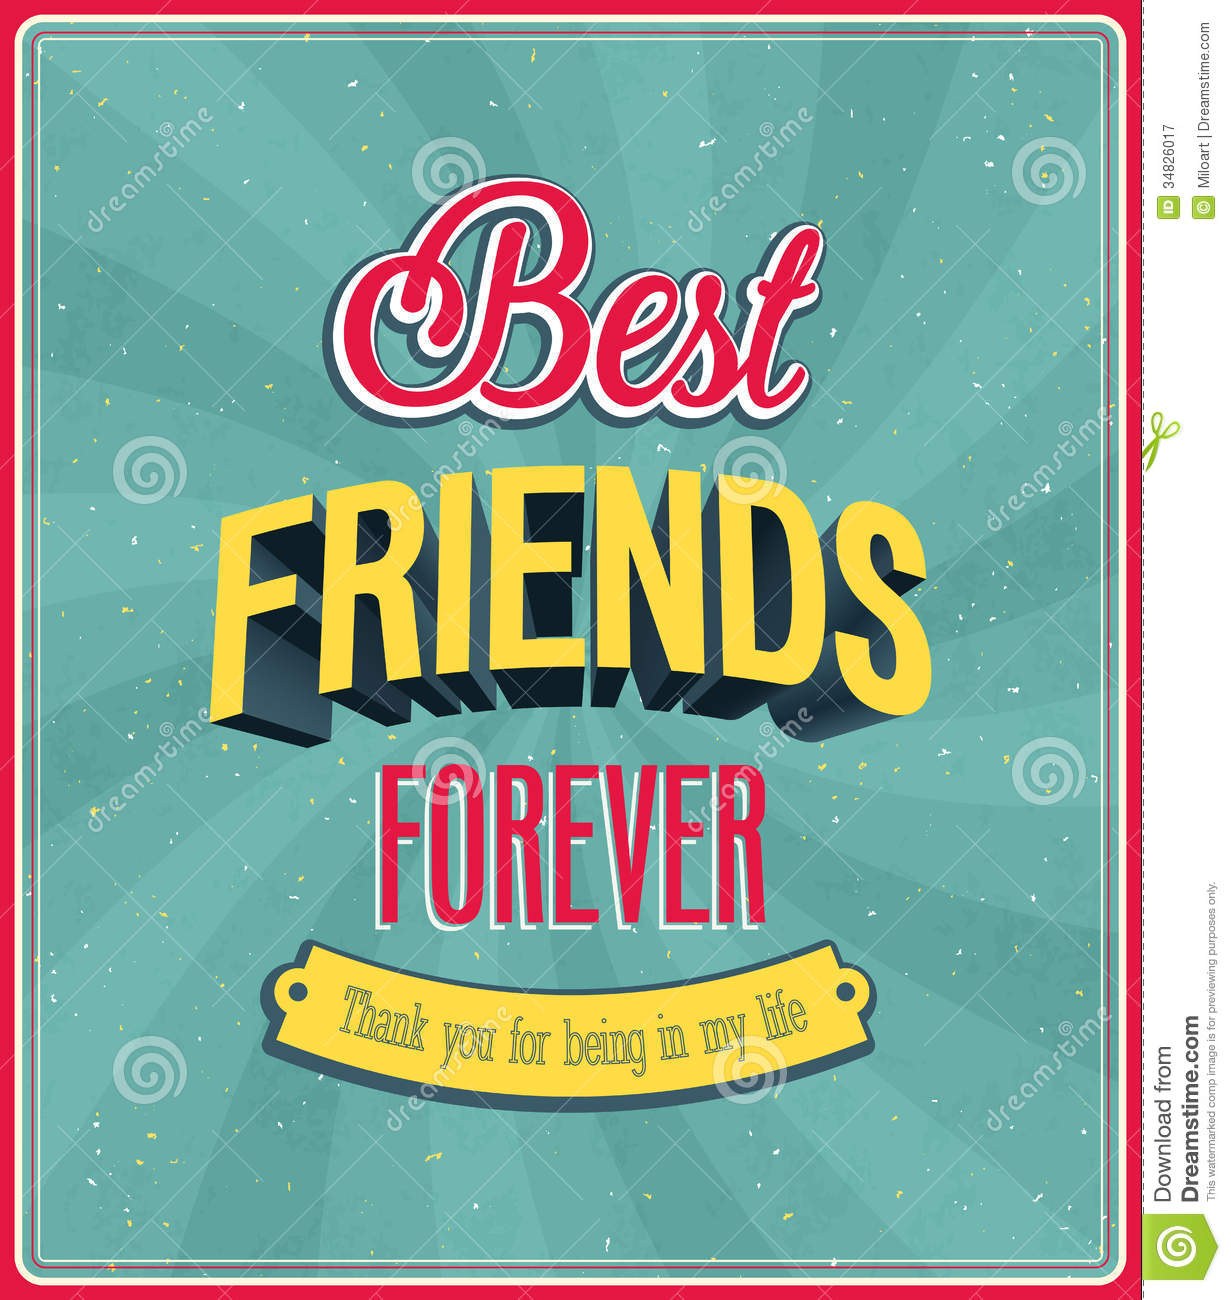 Cute Together Forever Wallpaper Best Friends Forever Typographic Design Stock Vector